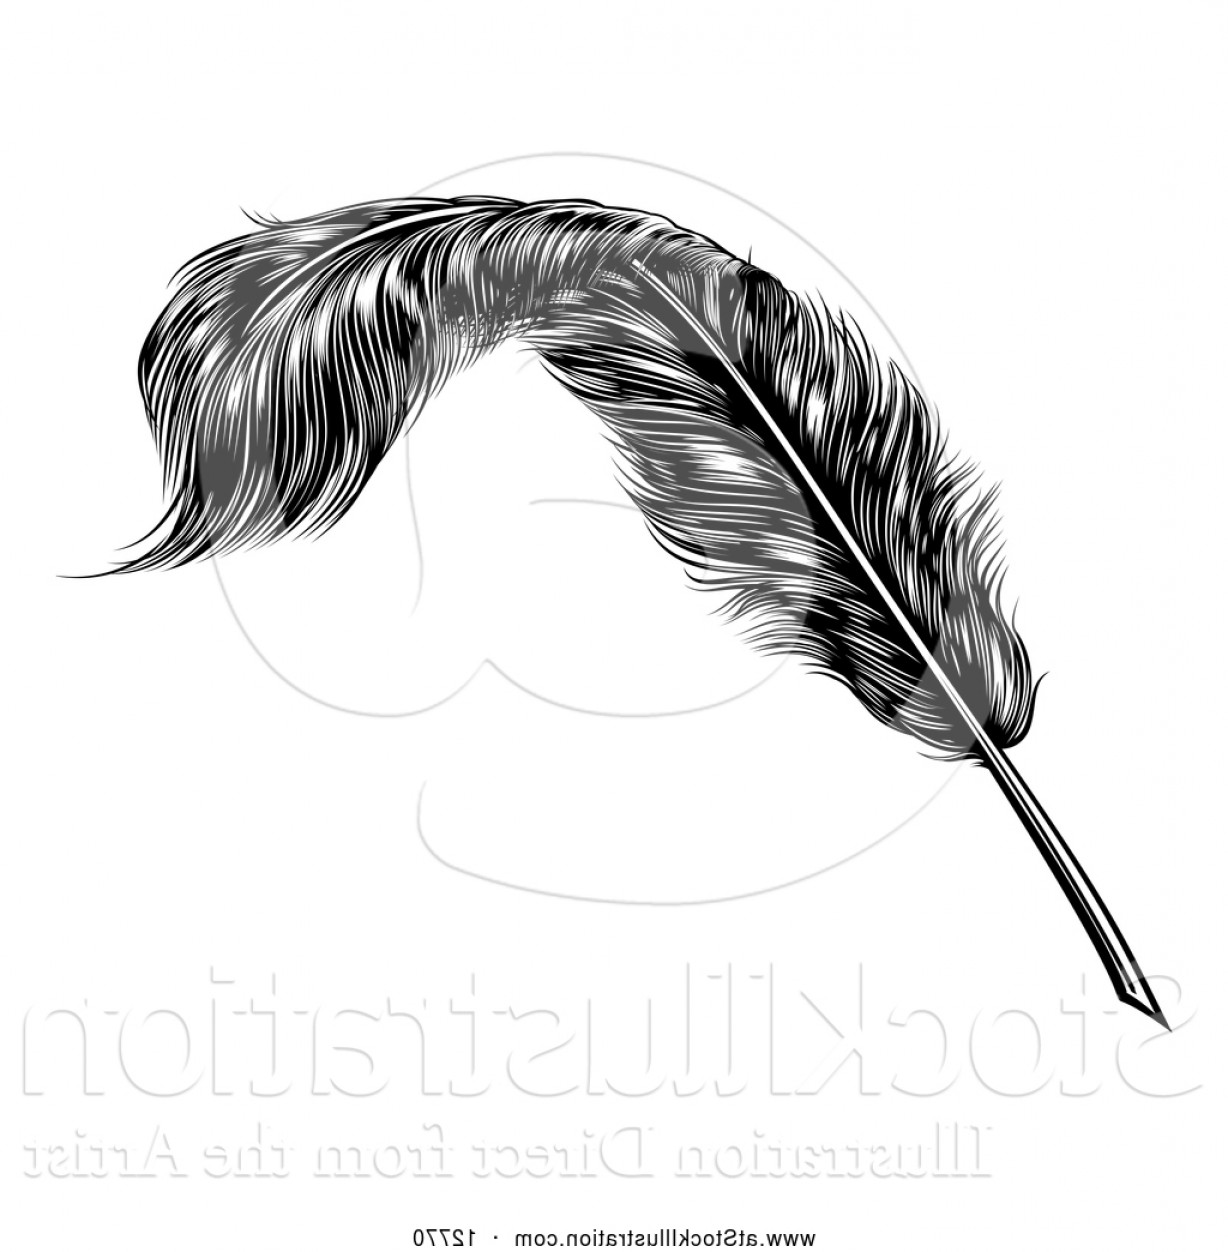 Quill Pen Vector: Vector Illustration Of A Black Engraved Feather Quill Pen By Atstockillustration